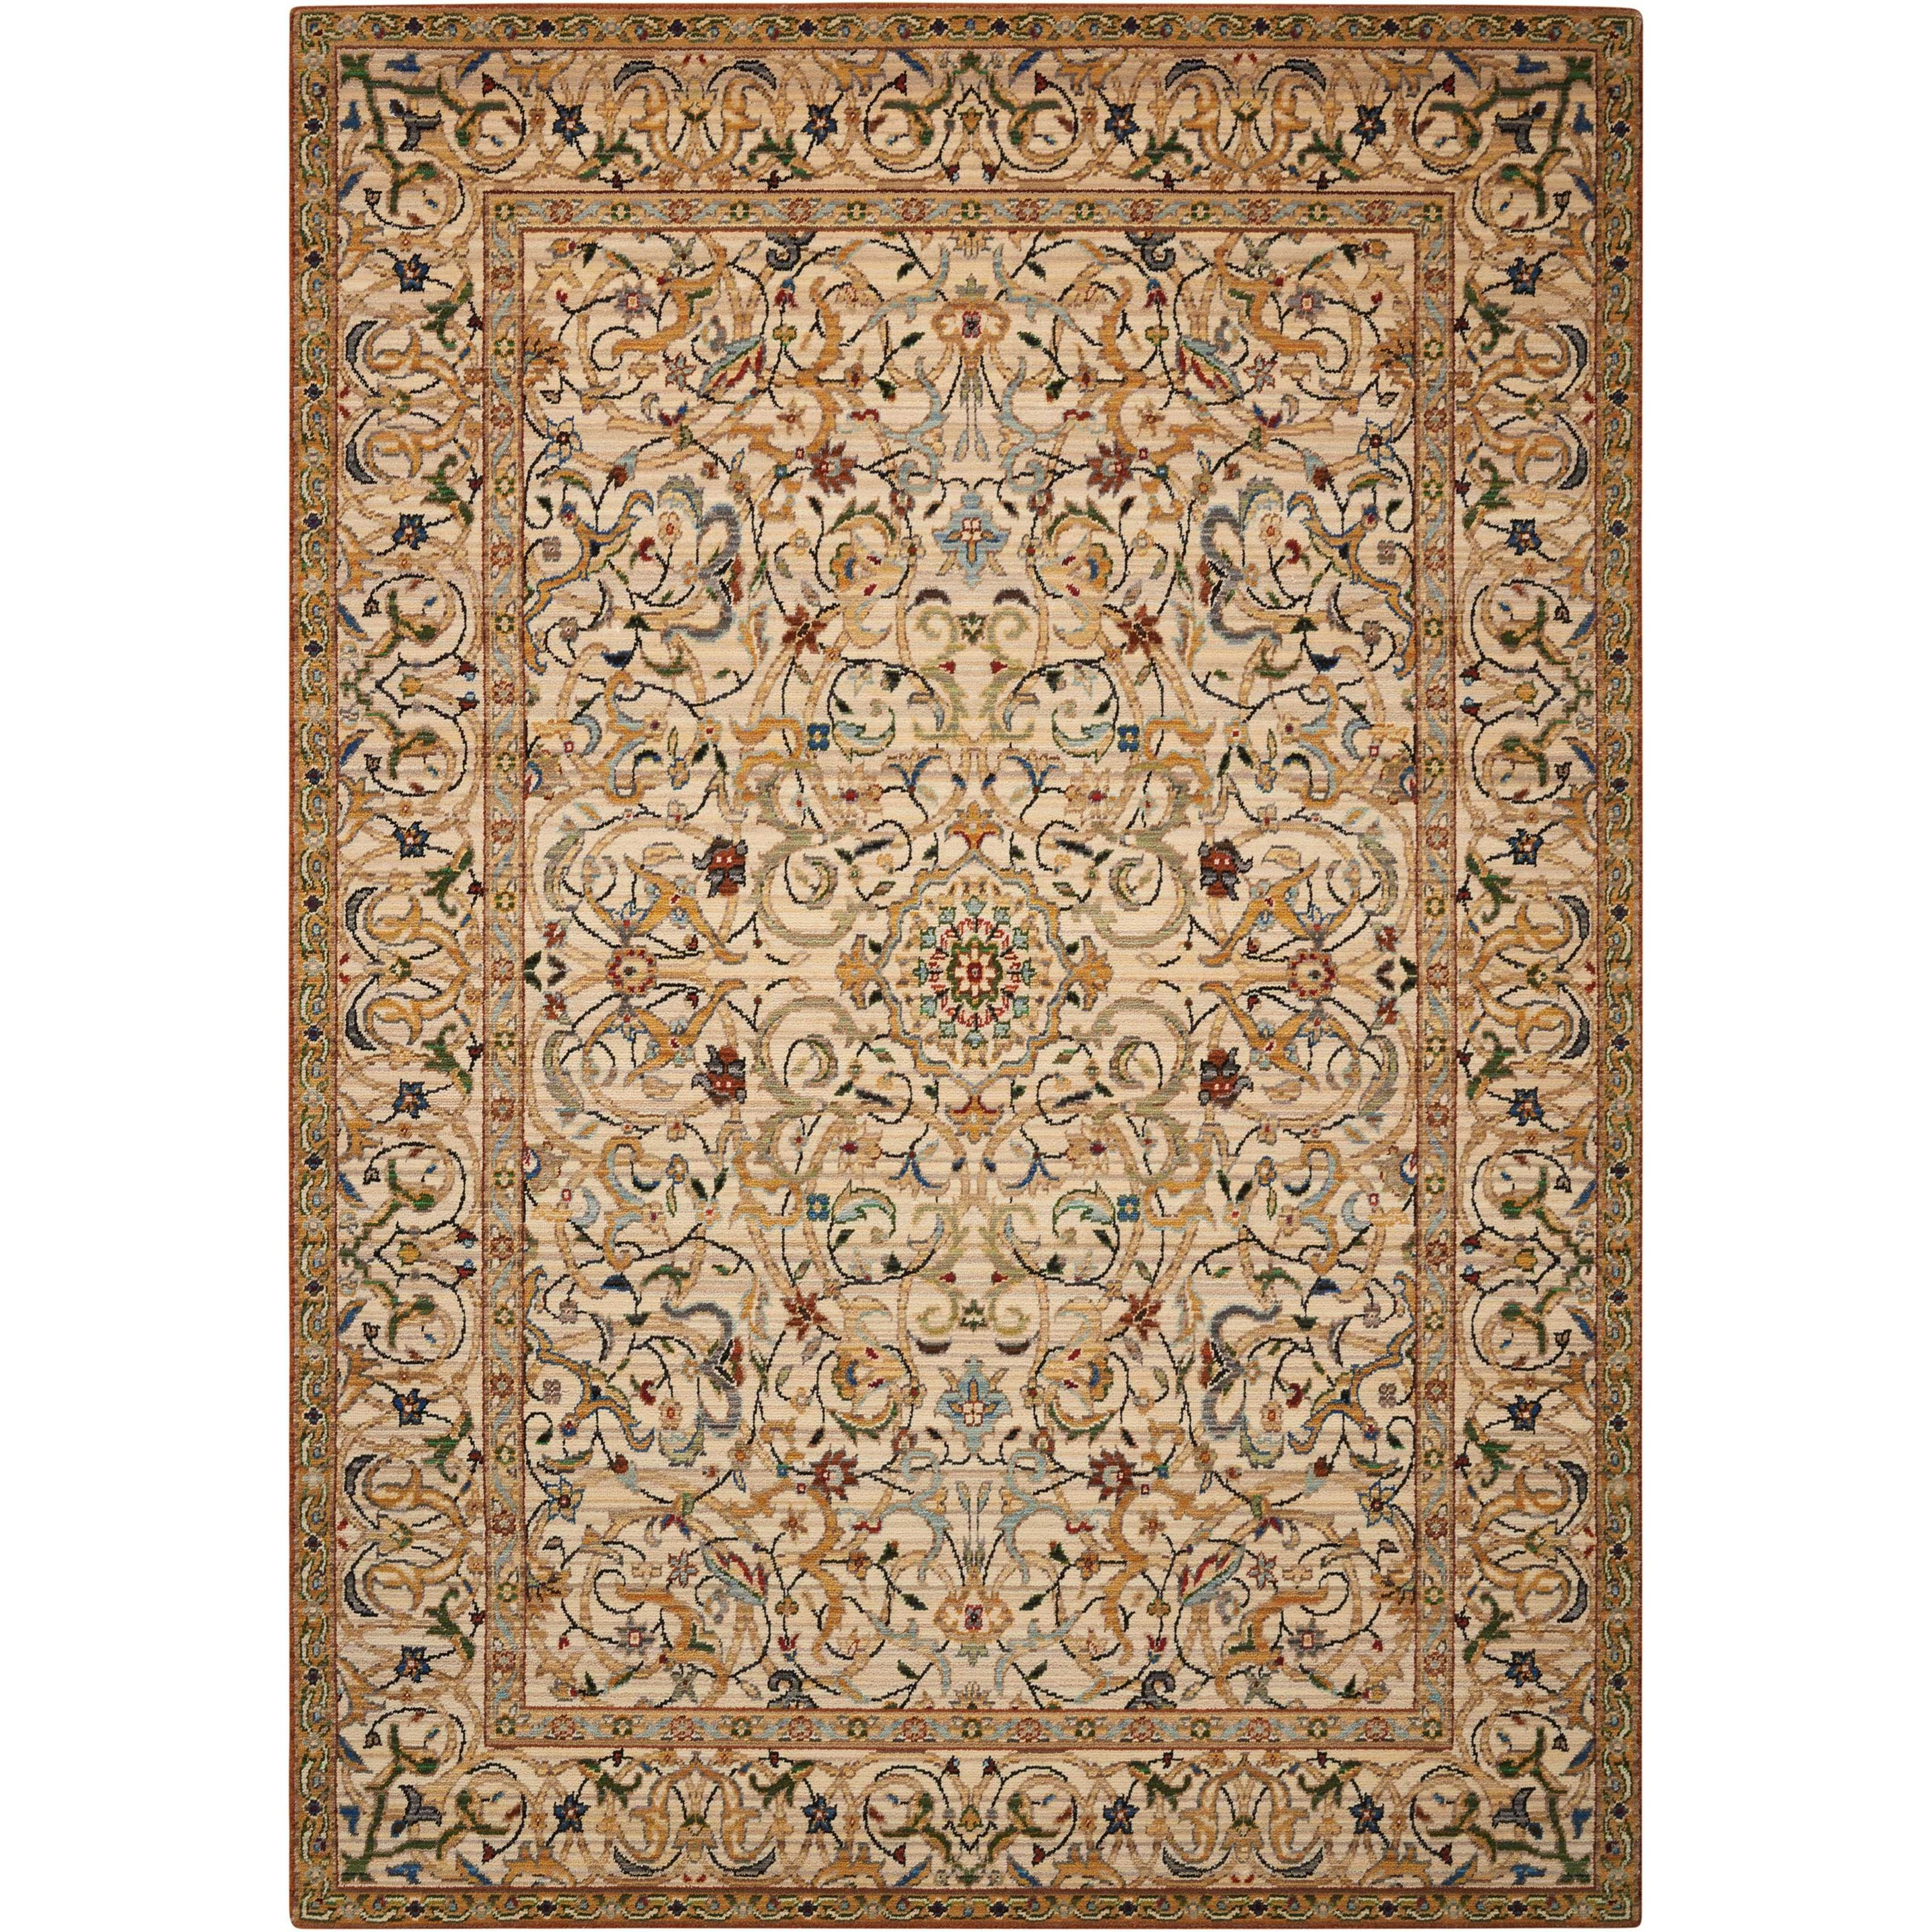 """Timeless 5'6"""" x 8' Copper Rectangle Rug by Nourison at Home Collections Furniture"""